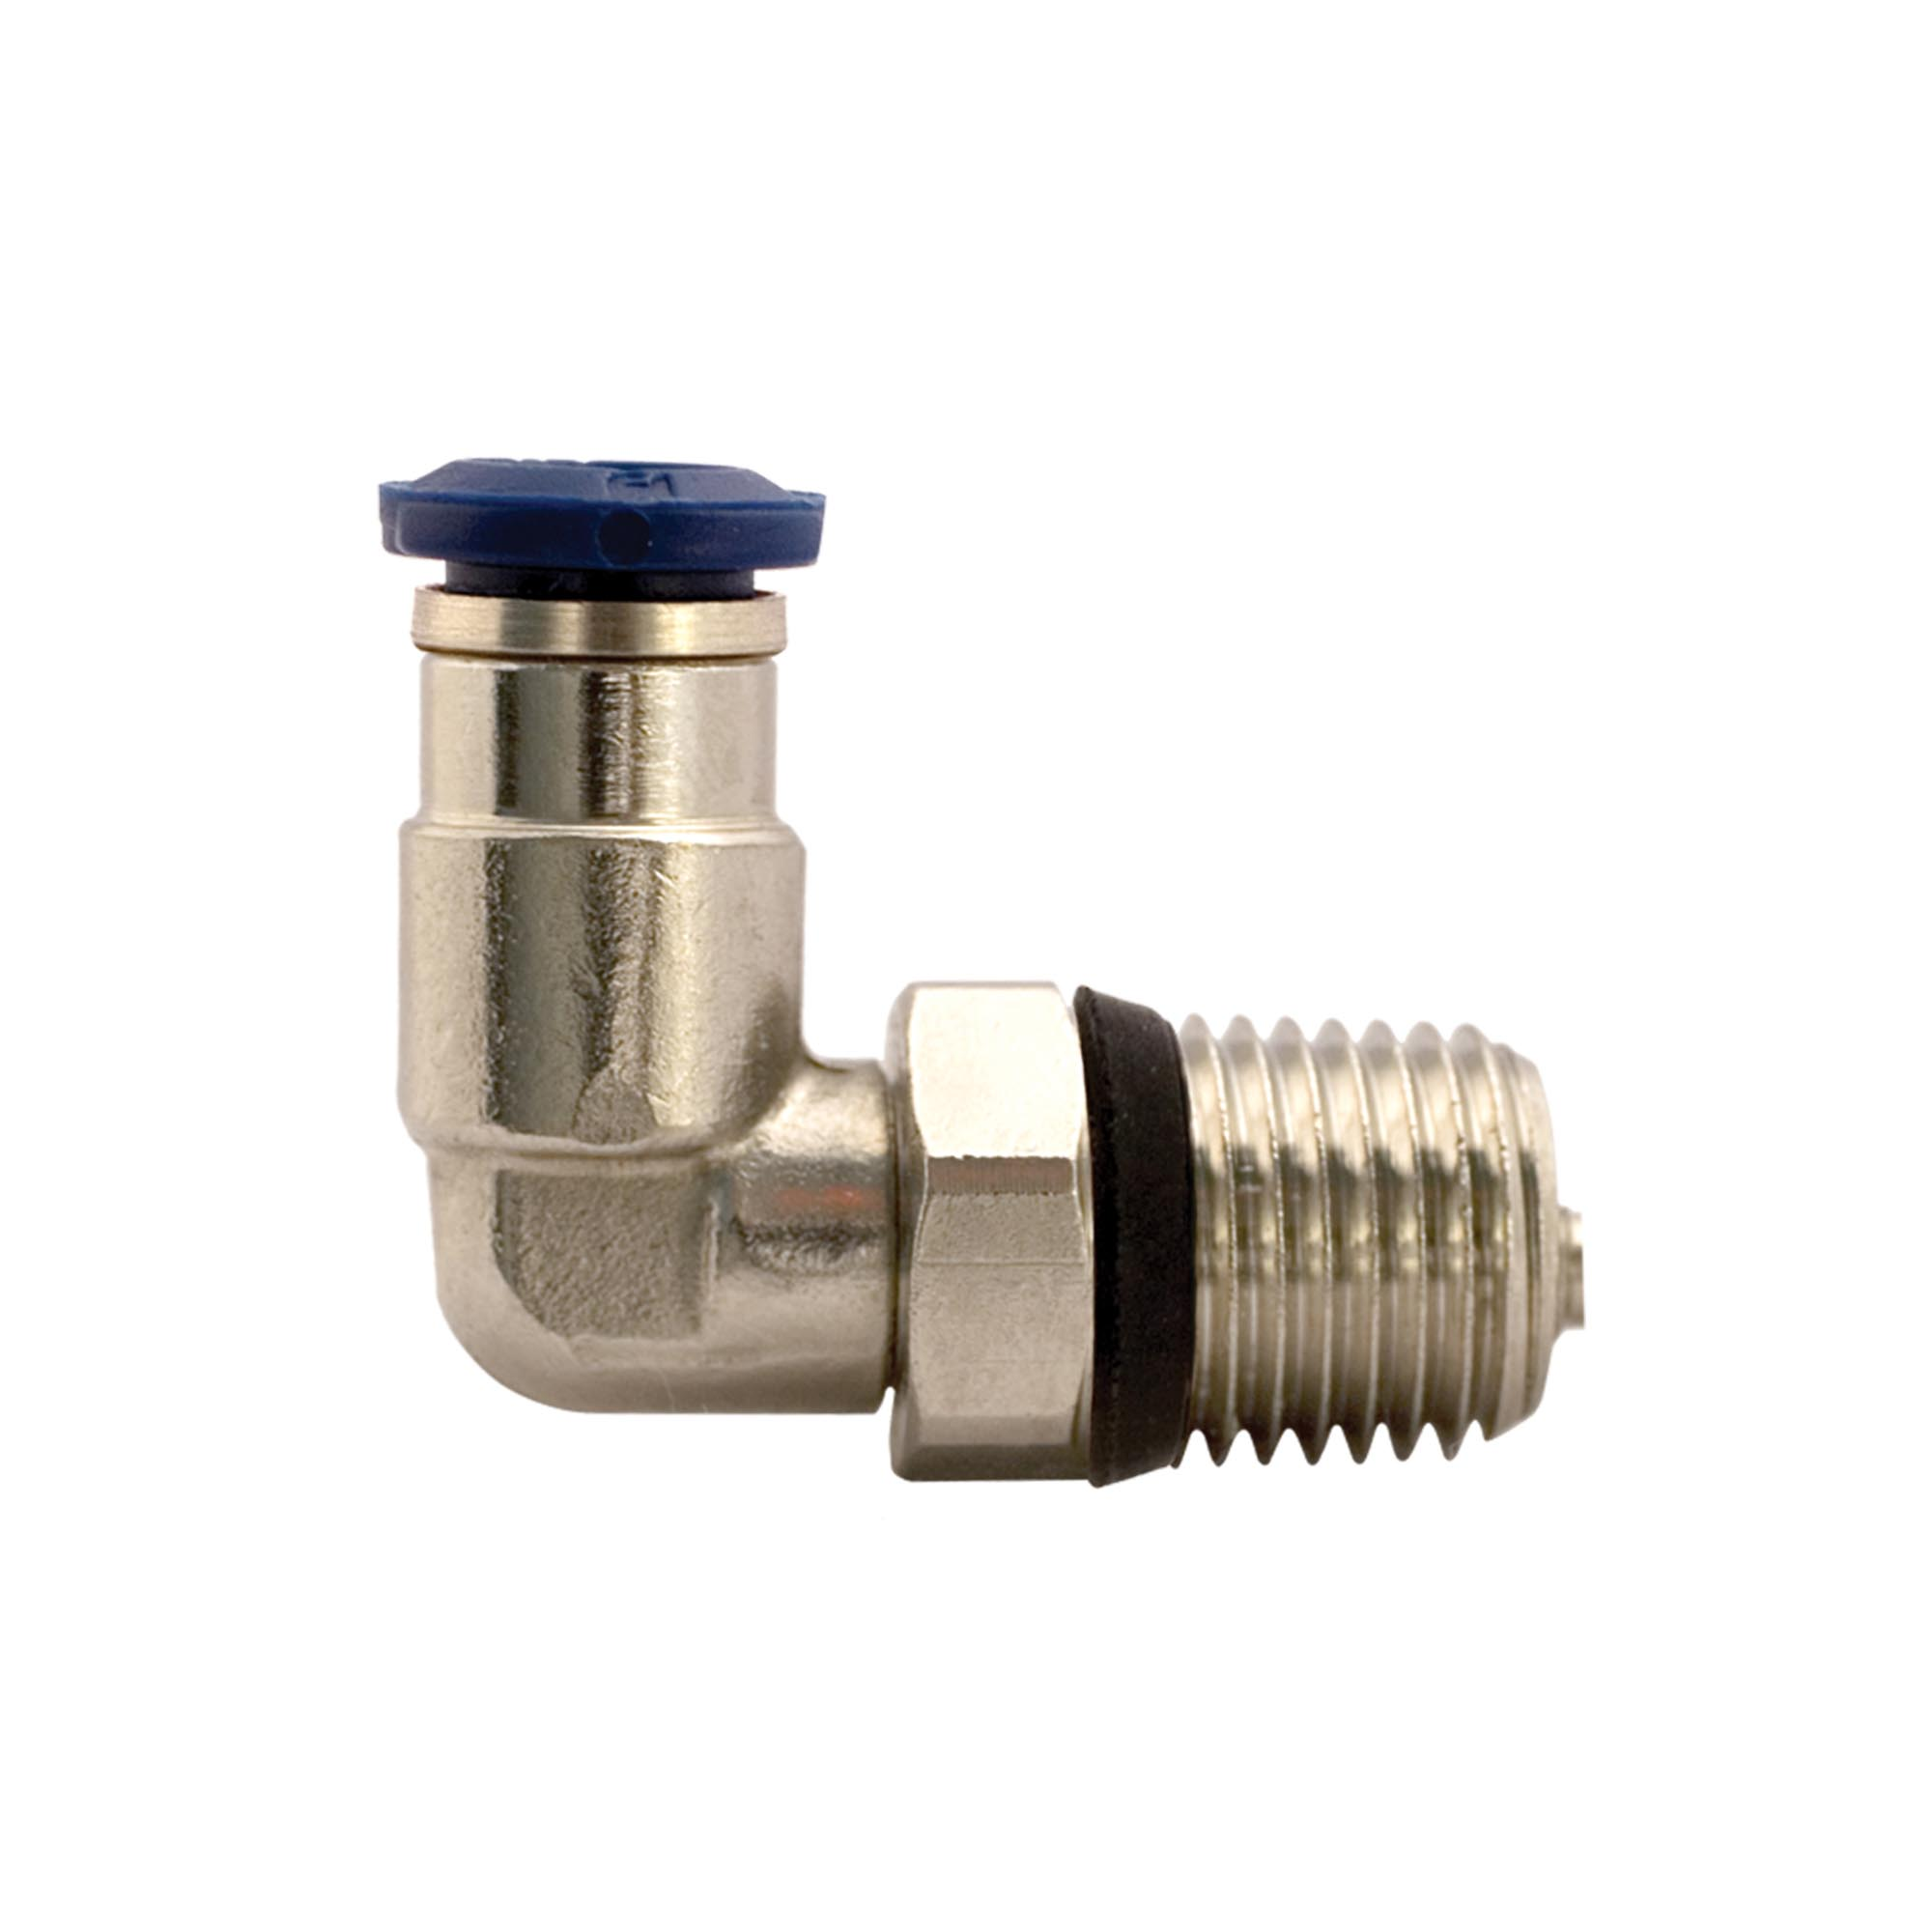 Model 900786 Push-In Swivel Elbow Connector, 3/8 Tube